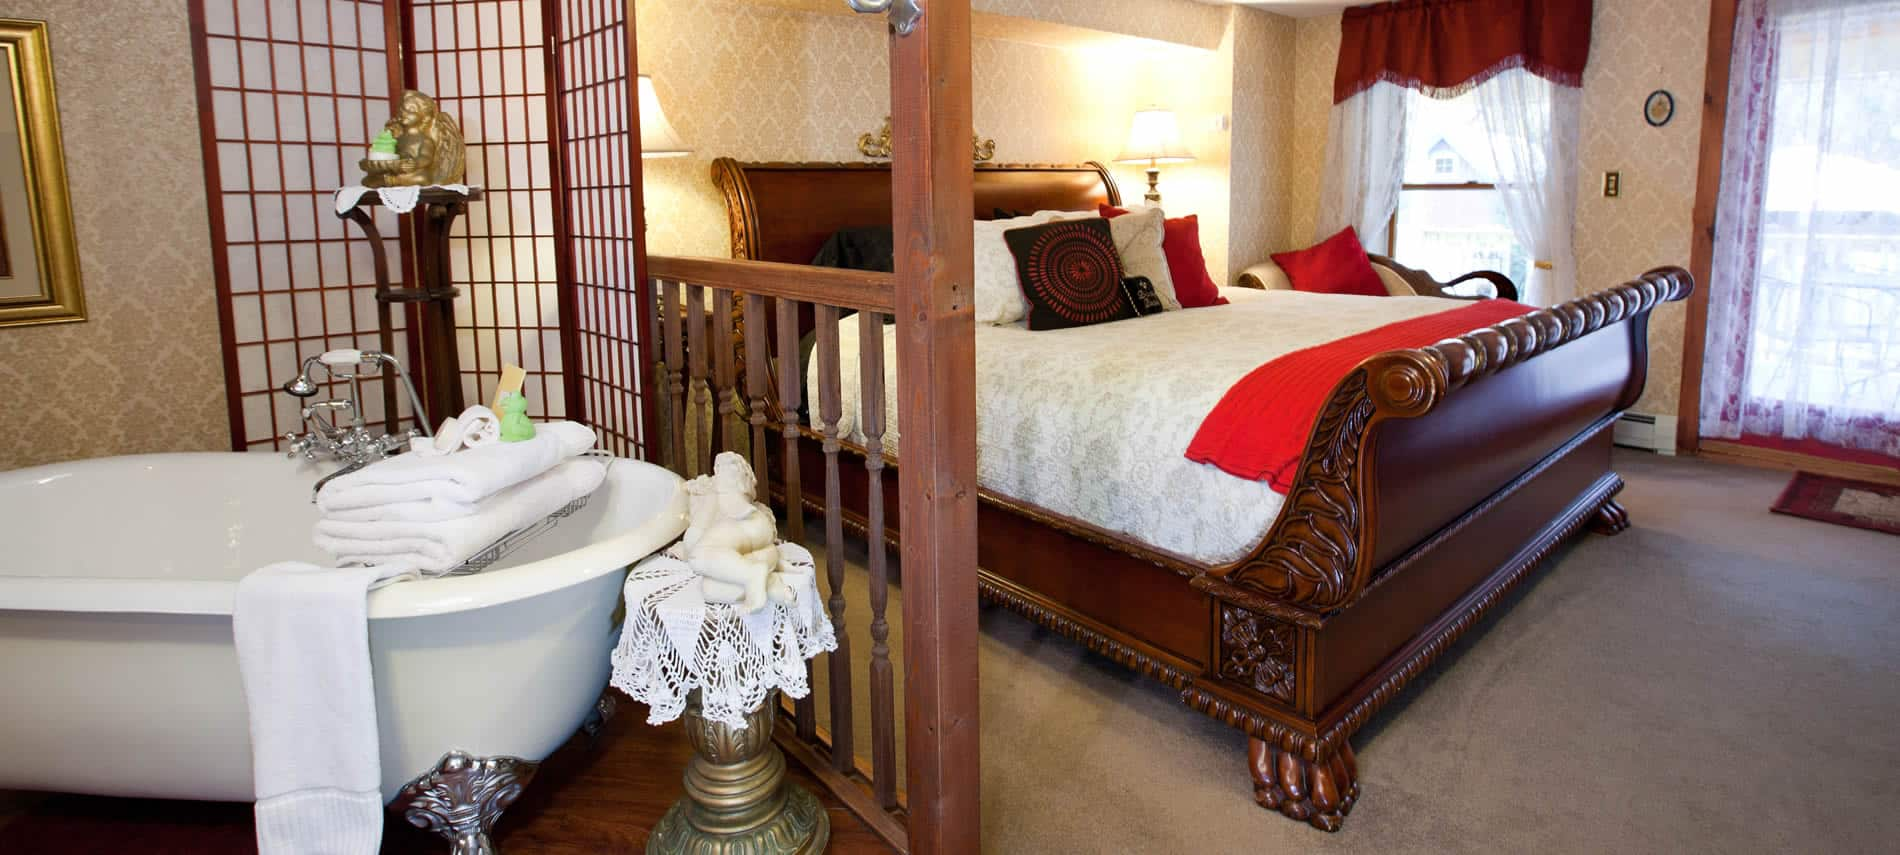 Princess Helena guest room, ivory paper walls, carved wood bed with ivory bedding, and claw foot tub behind screen dividers